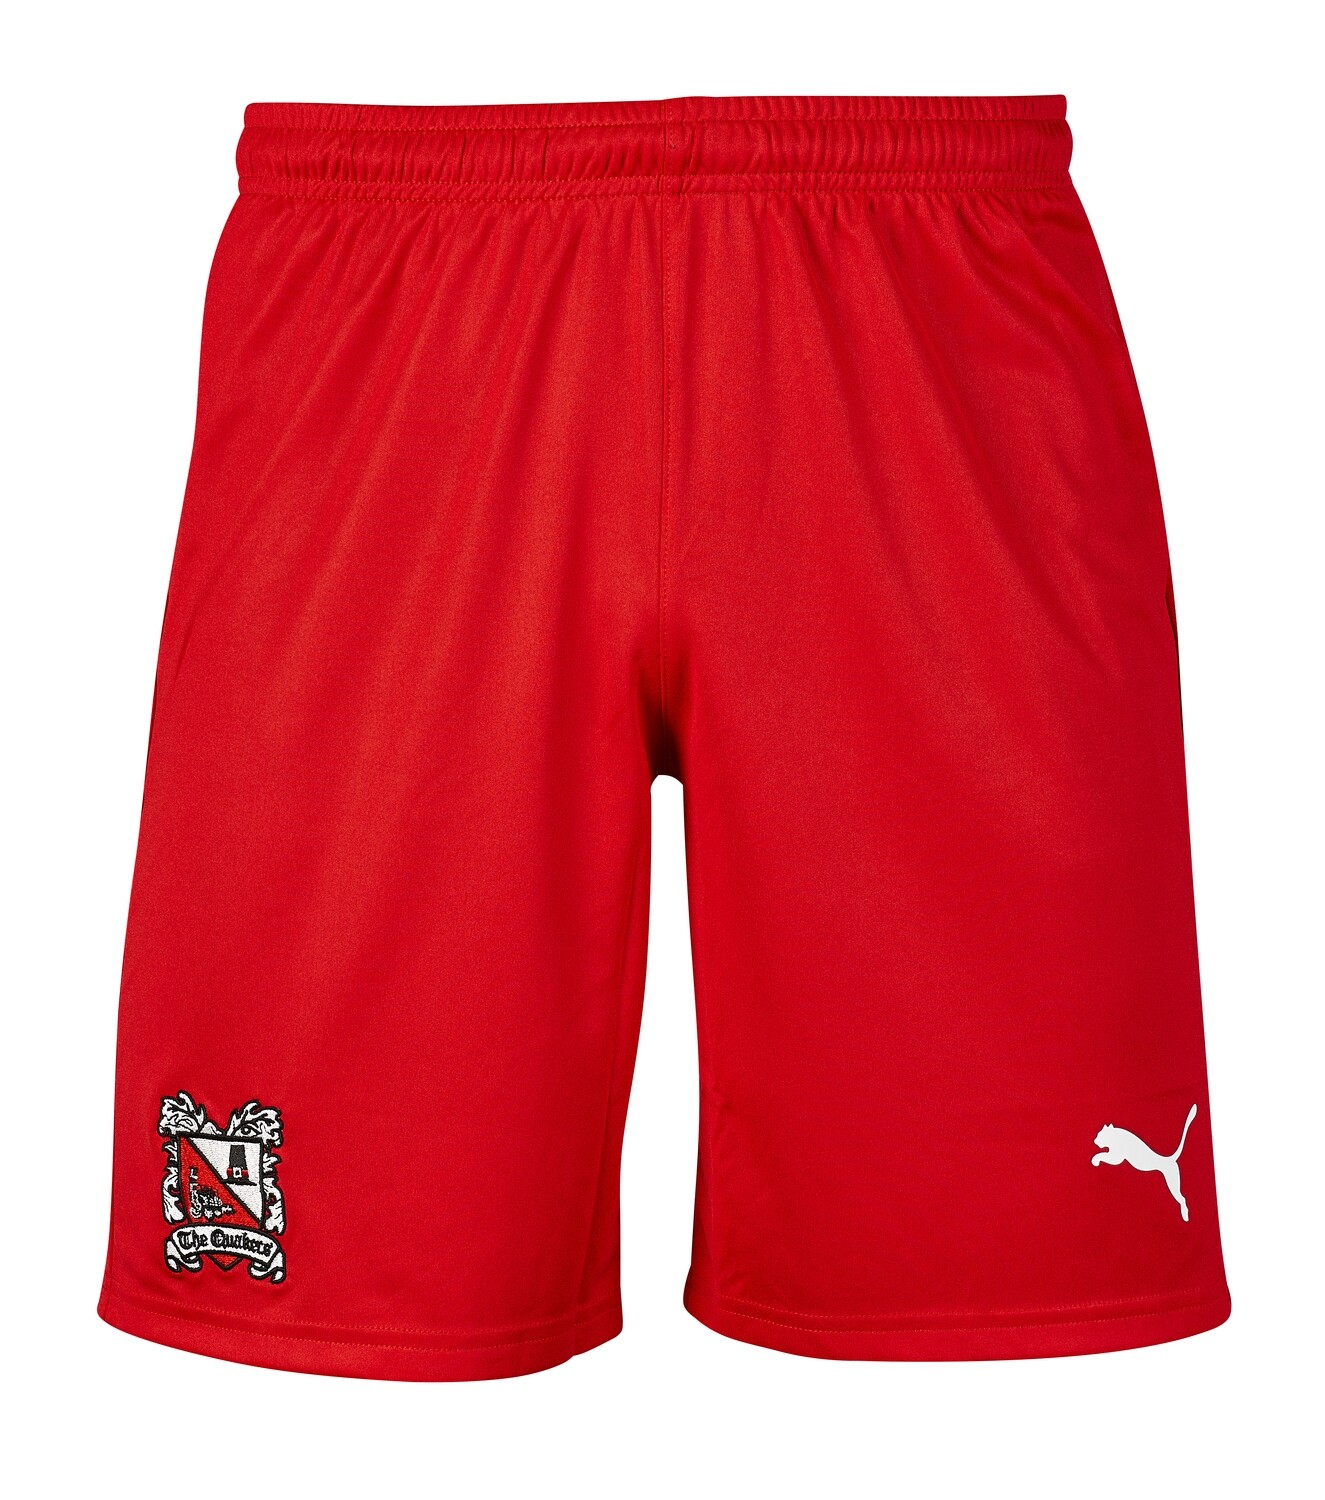 Puma Away Shorts 19/20 Junior